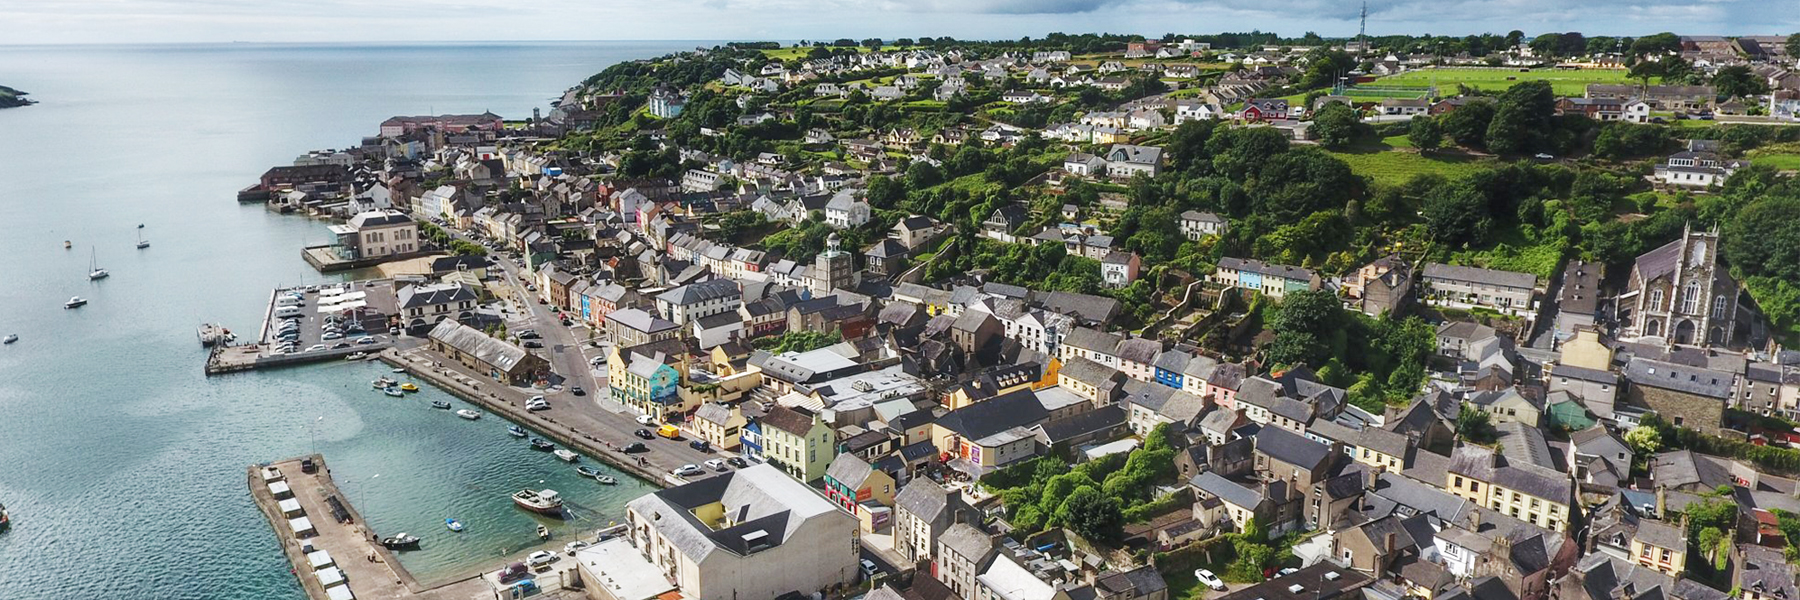 Bird's eye view of Youghal Ireland with the harbour, houses and green parks